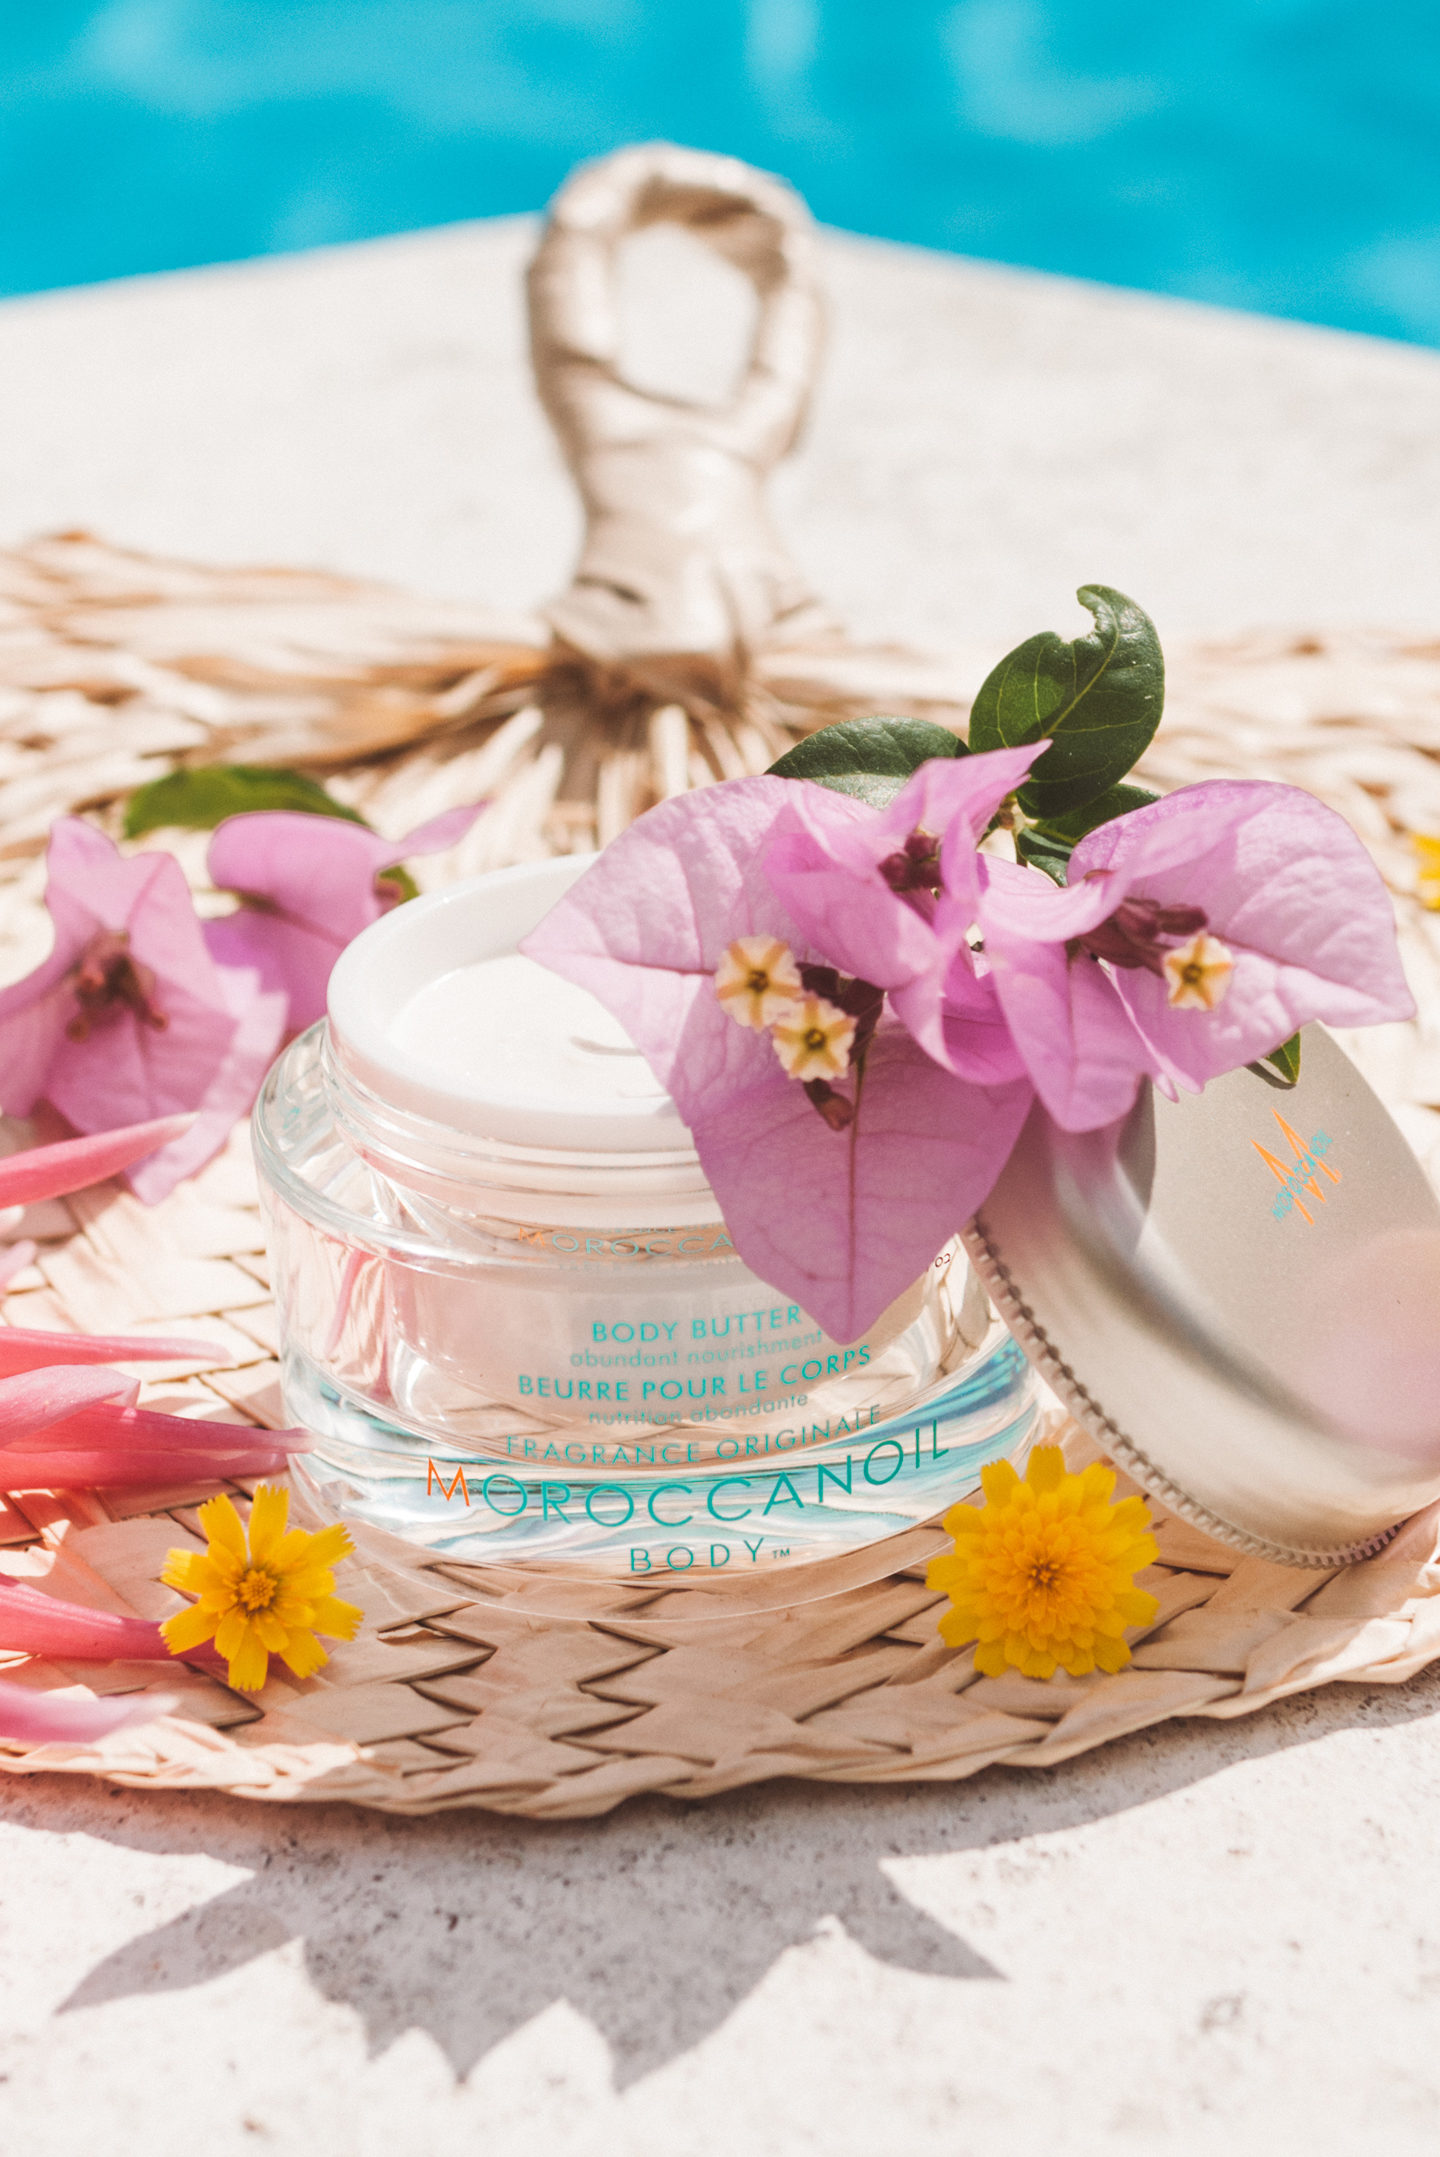 Moroccanoil Body Butter - Fragrance Originale